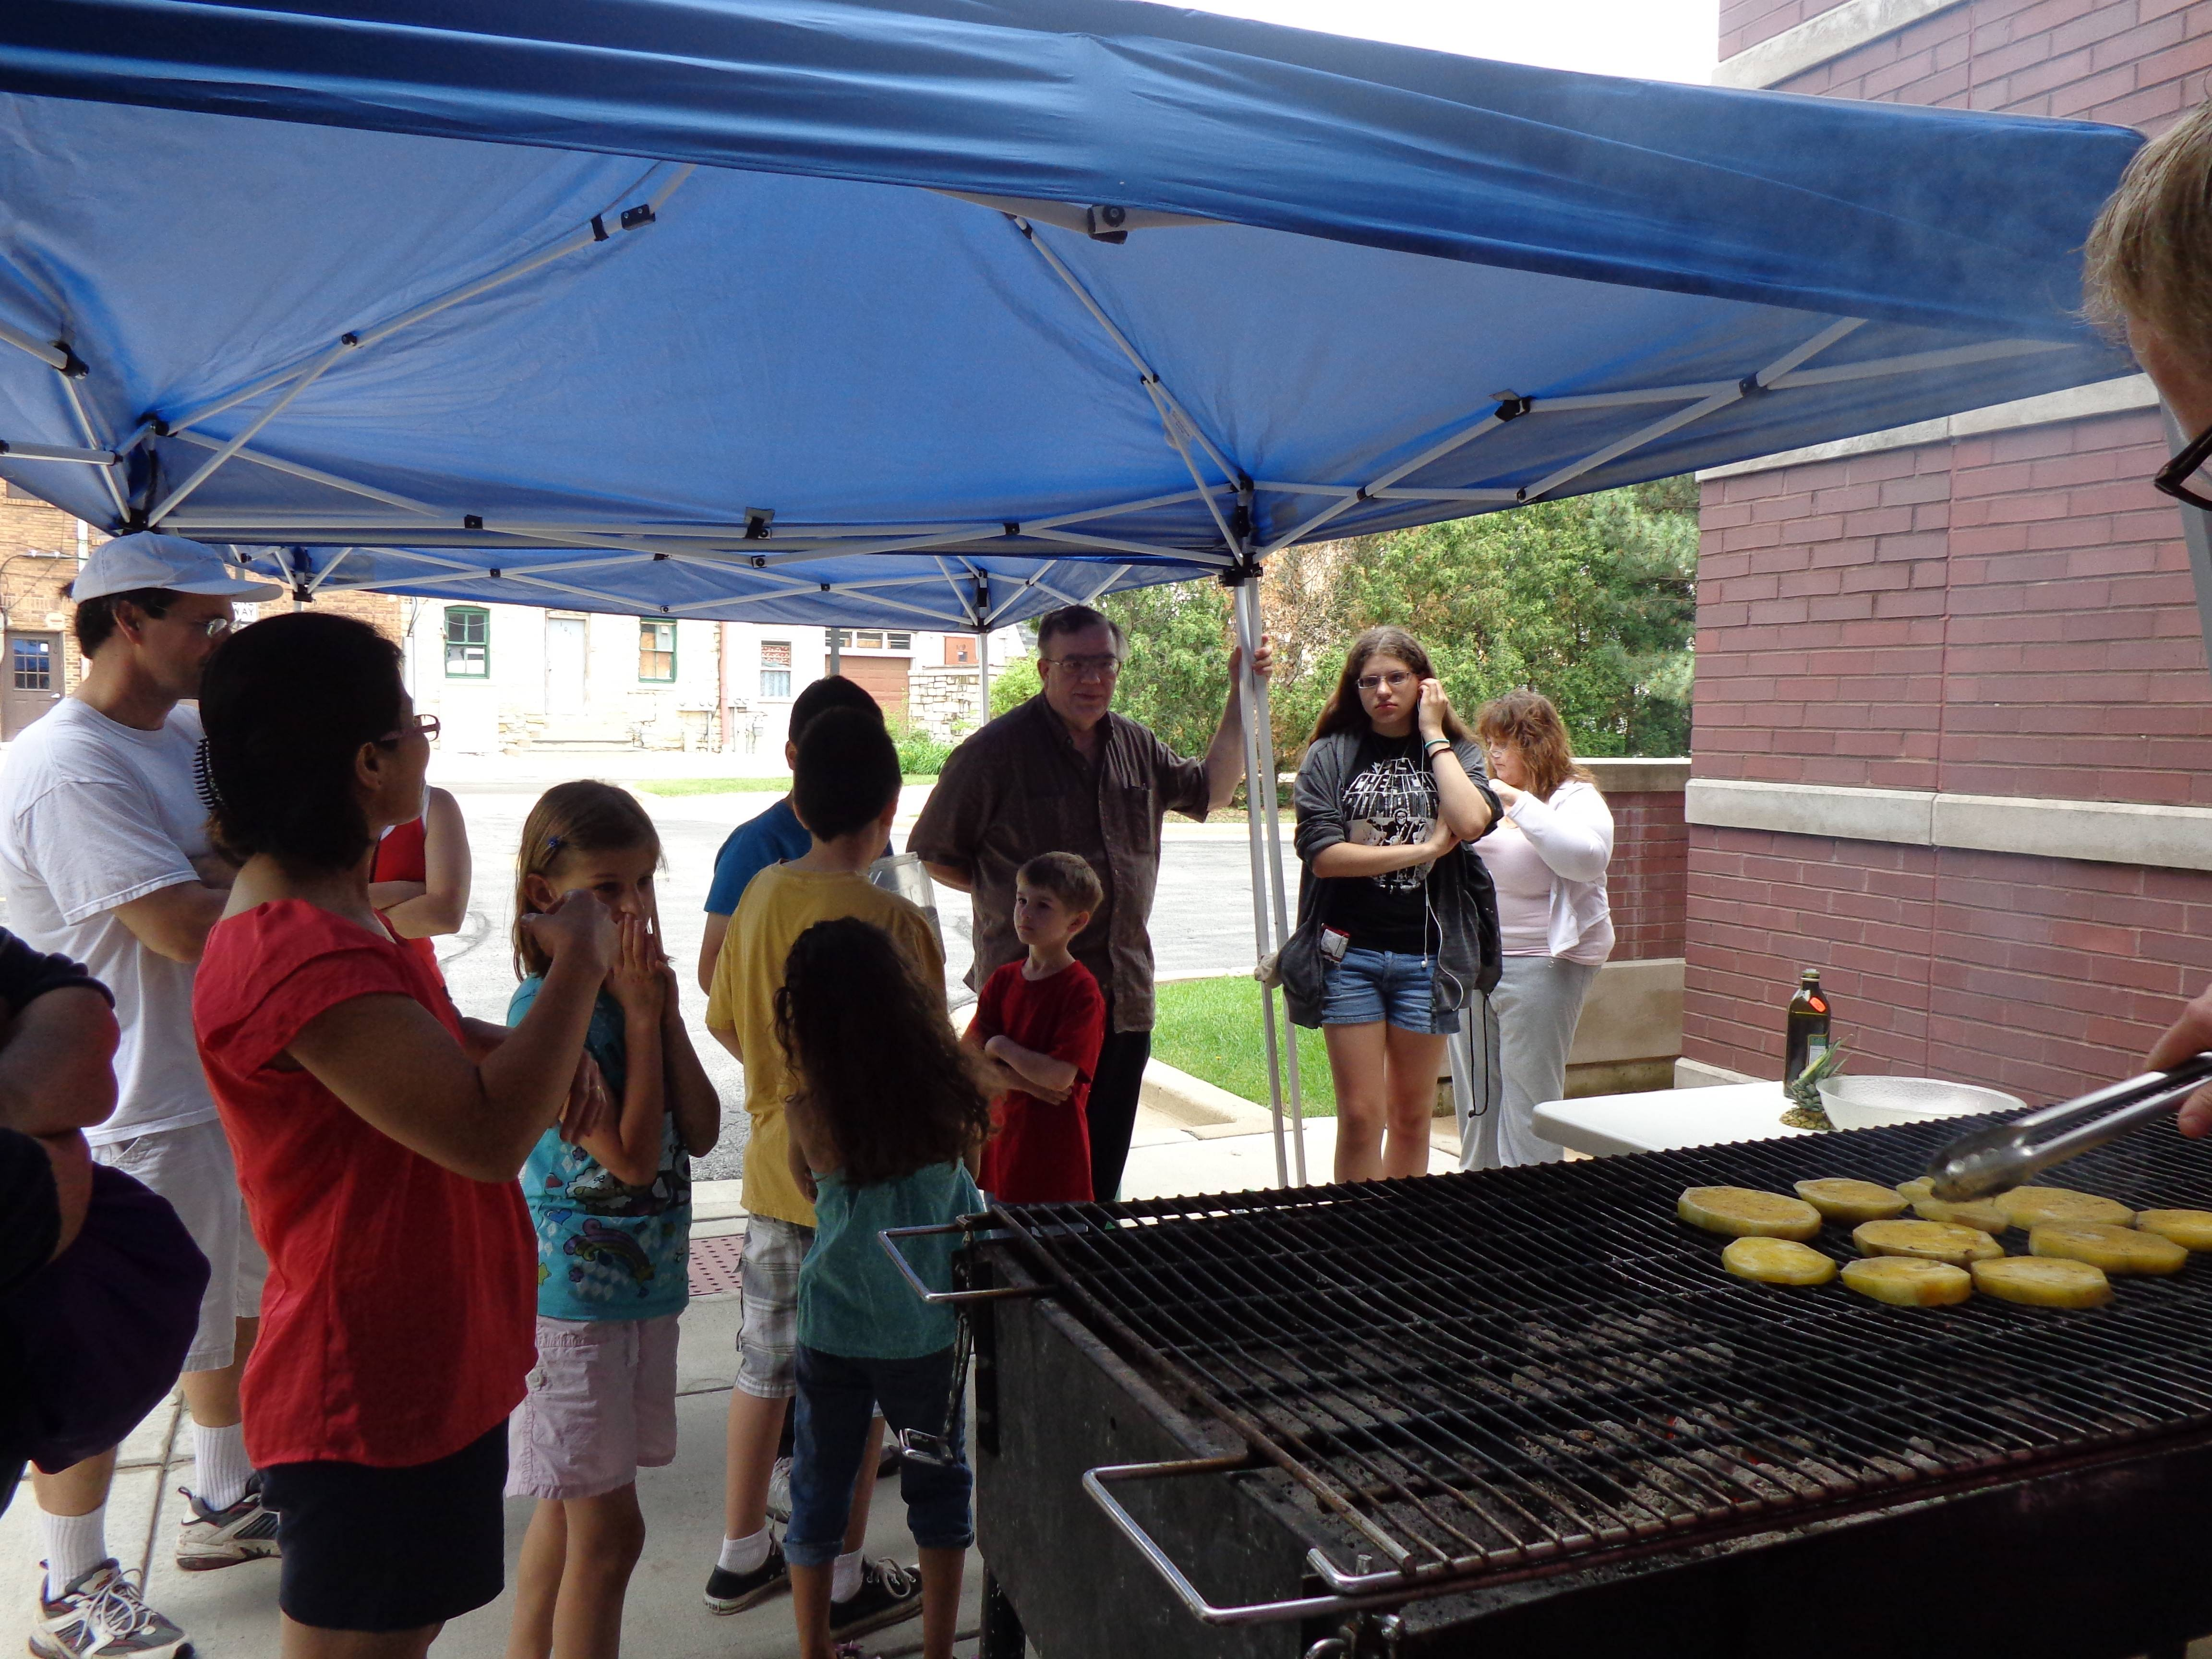 West Chicago library patrons stay dry while watching a grilling demonstration by Chef David Esau as part of the Father's Day Cookout program on Saturday.